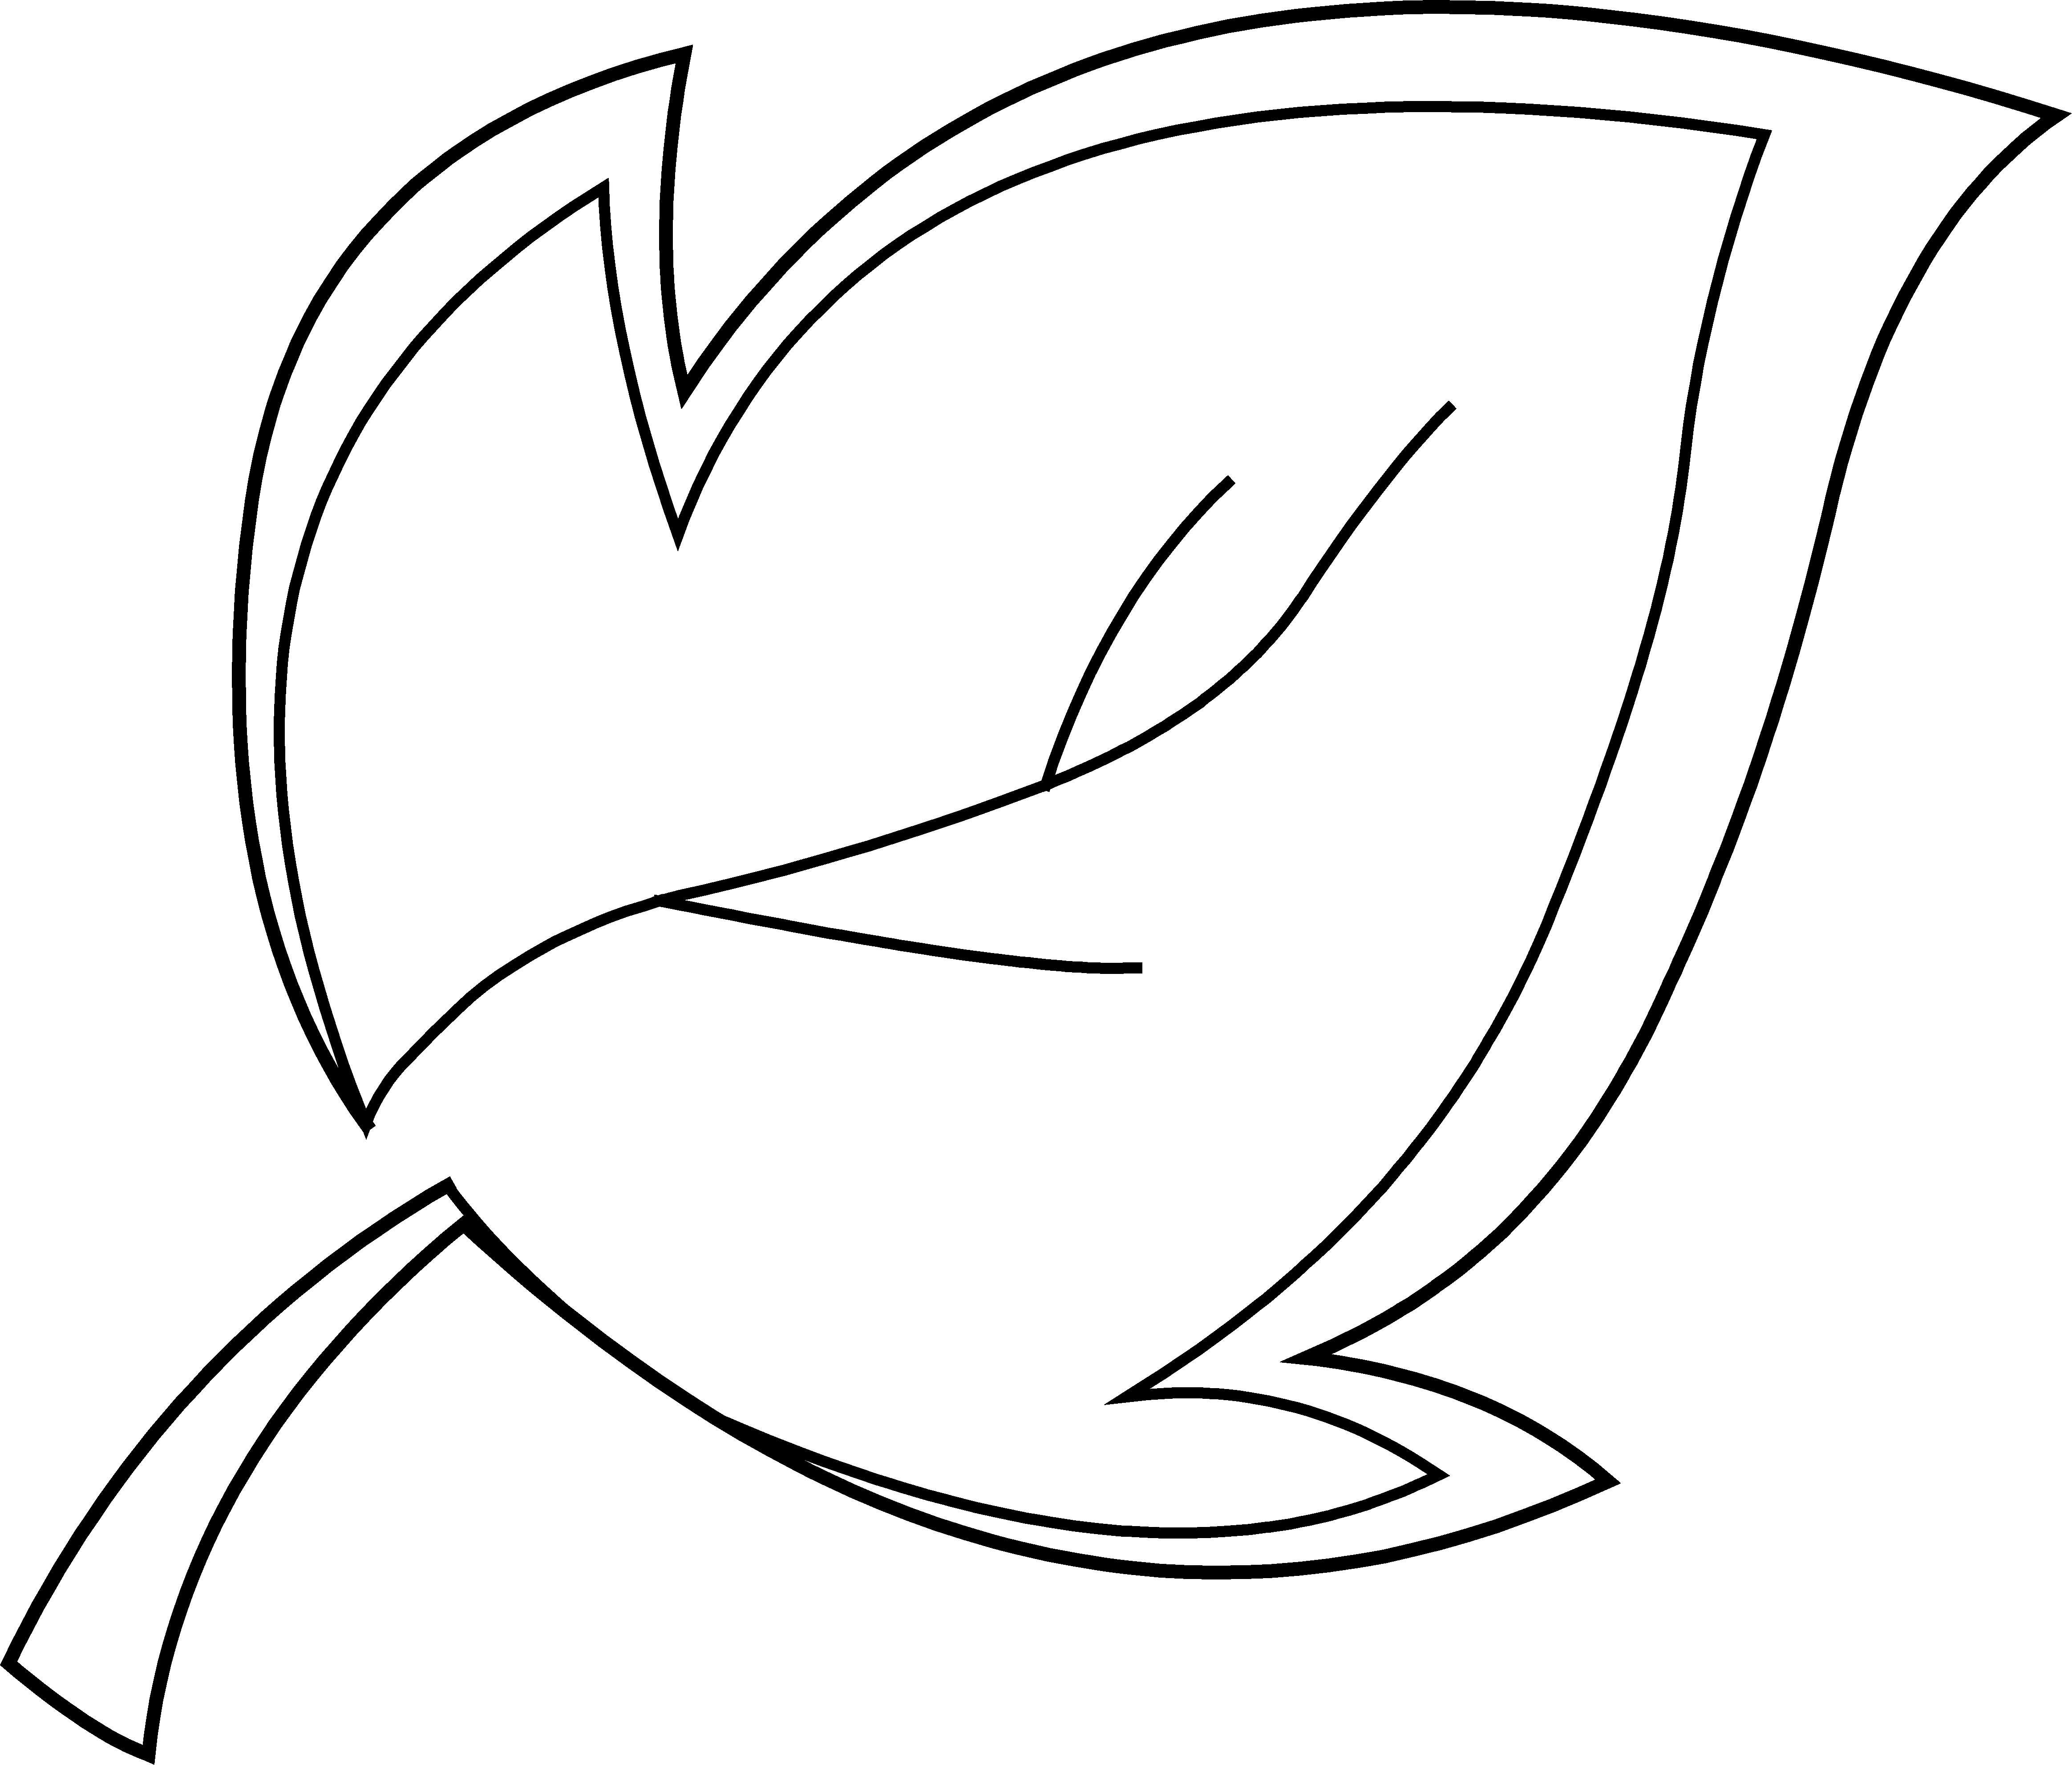 Line Drawing Leaves : Leaf line art cliparts